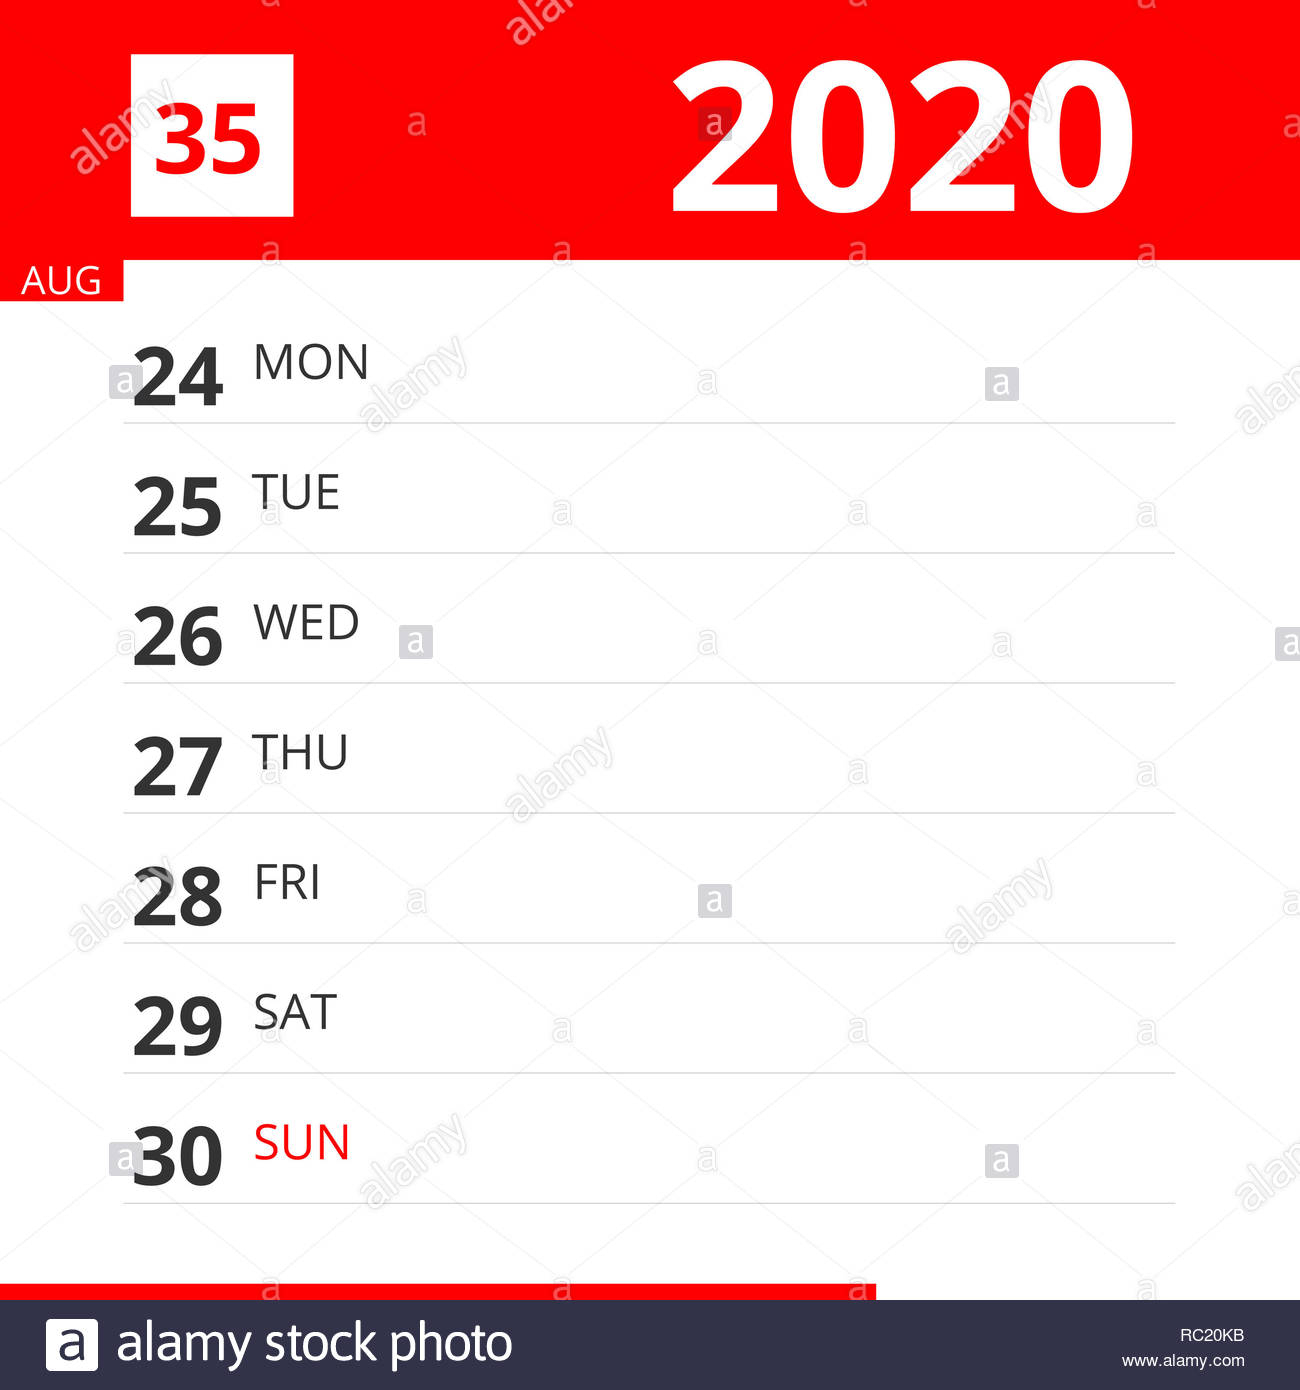 Calendar Planner For Week 35 In 2020, Ends August 30, 2020